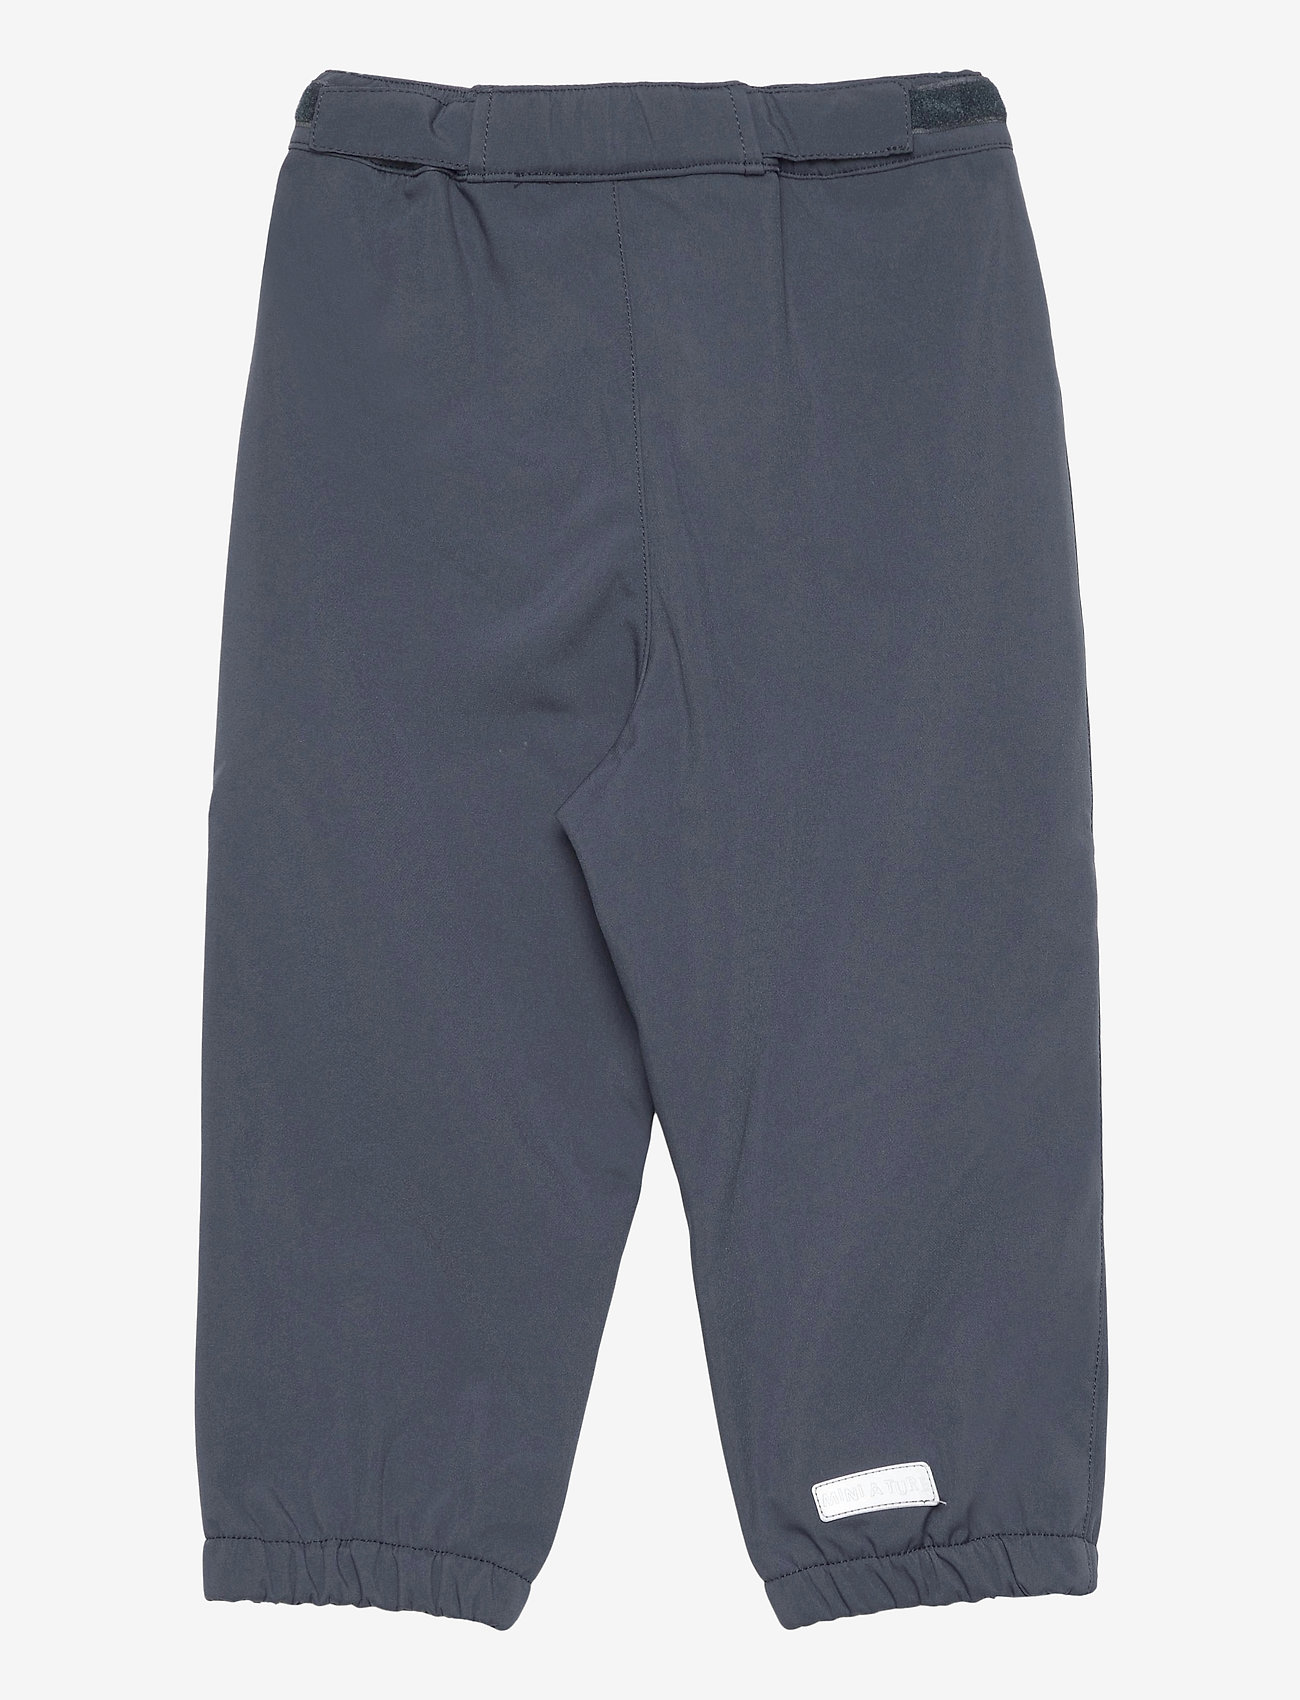 Mini A Ture - Aian Pants, M - bovenkleding - ombre blue - 1